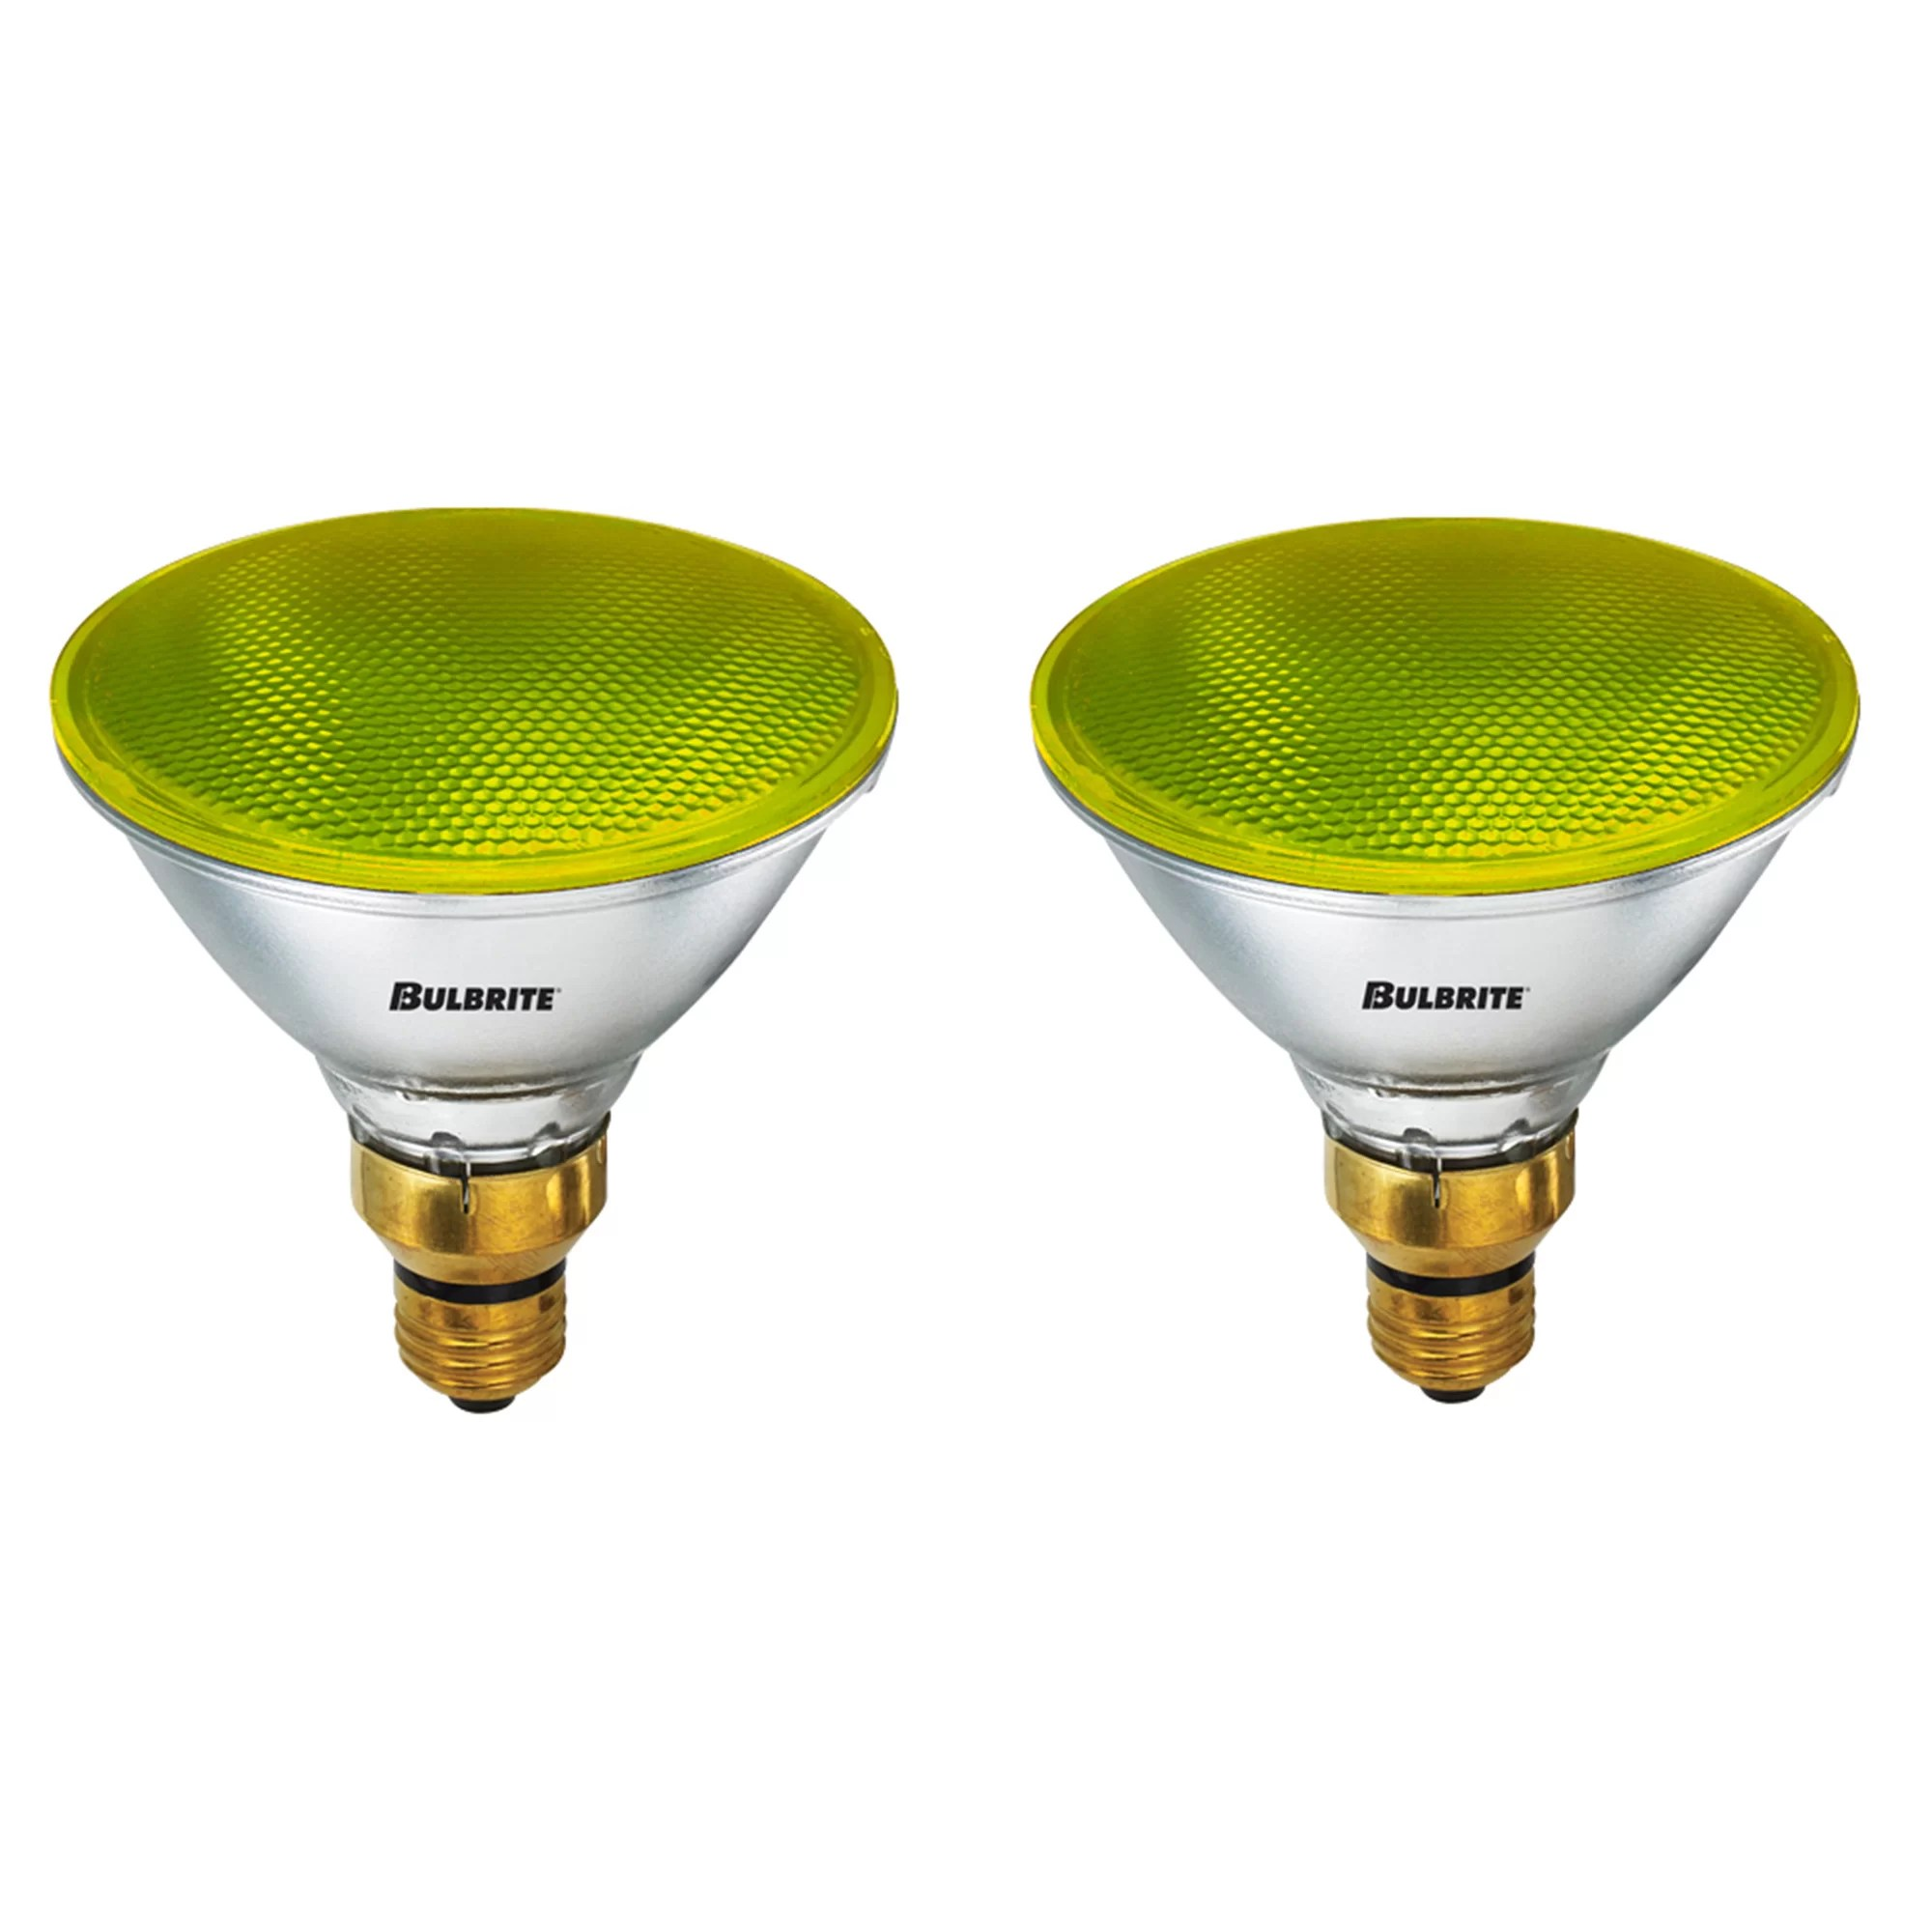 Halogen Spotlight Bulbs 90w E26 Dimmable Halogen Spotlight Light Bulb Yellow